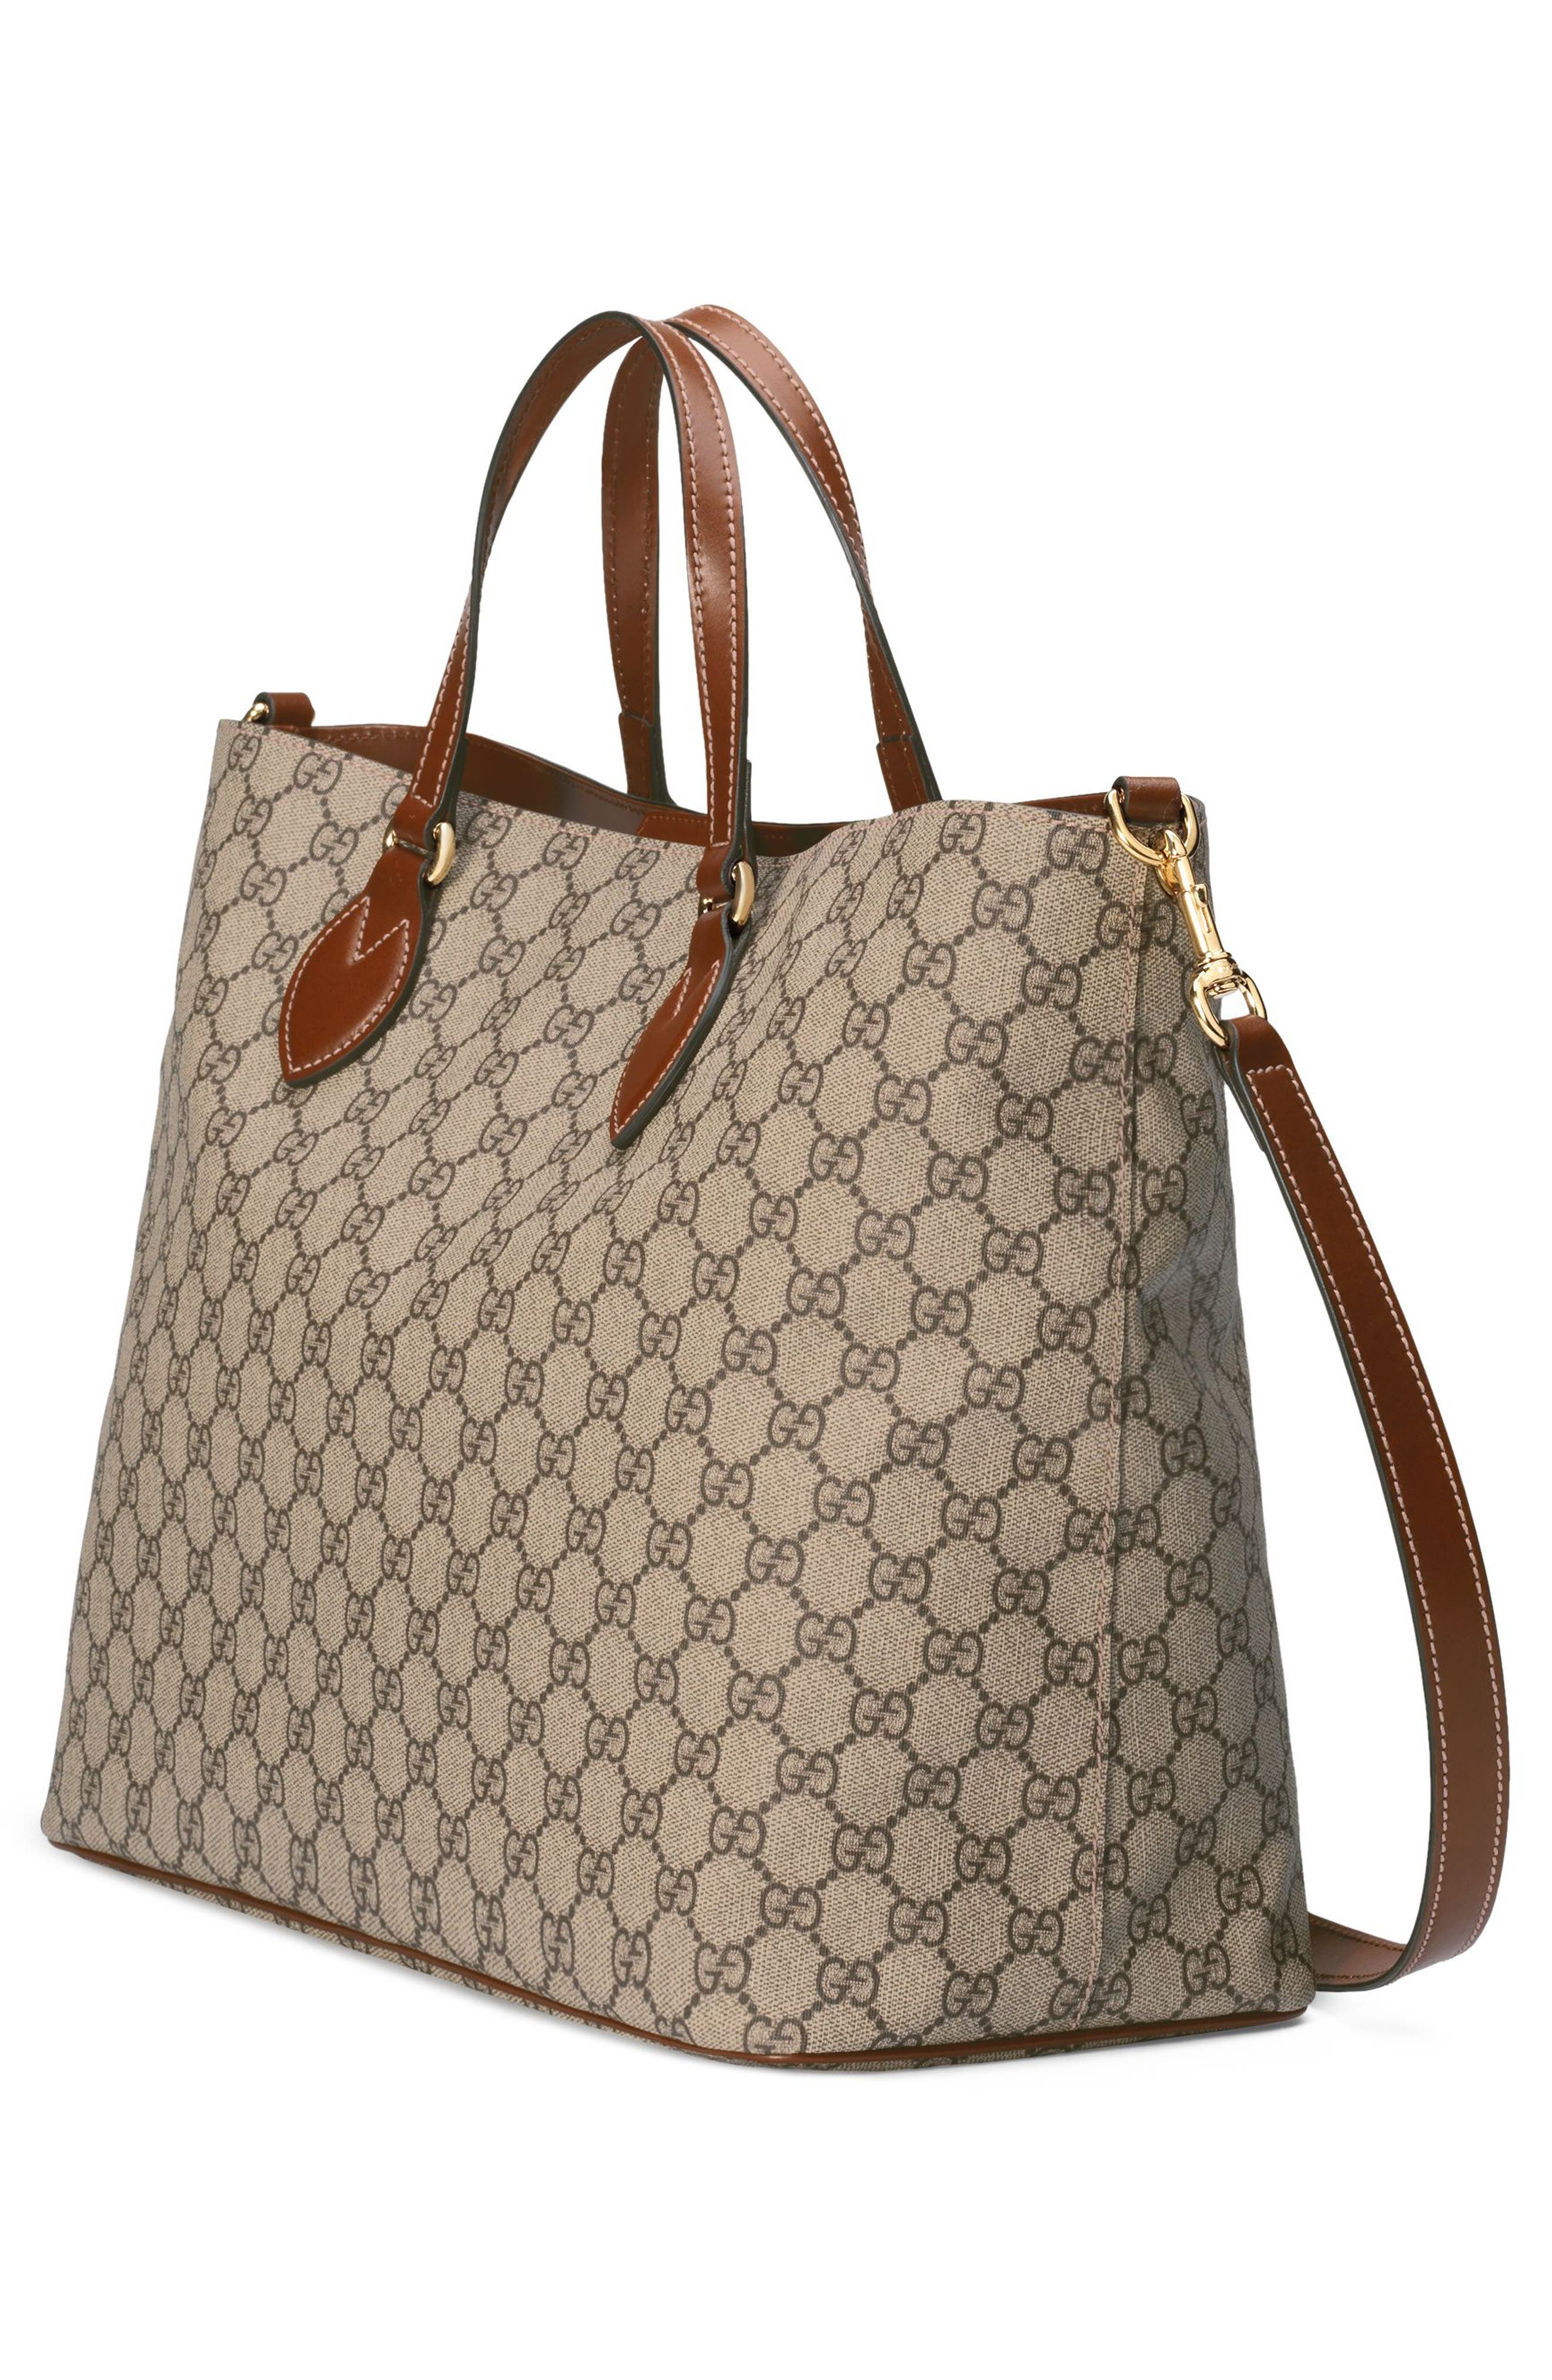 GG Supreme Soft Canvas Tote,                             Alternate thumbnail 4, color,                             283